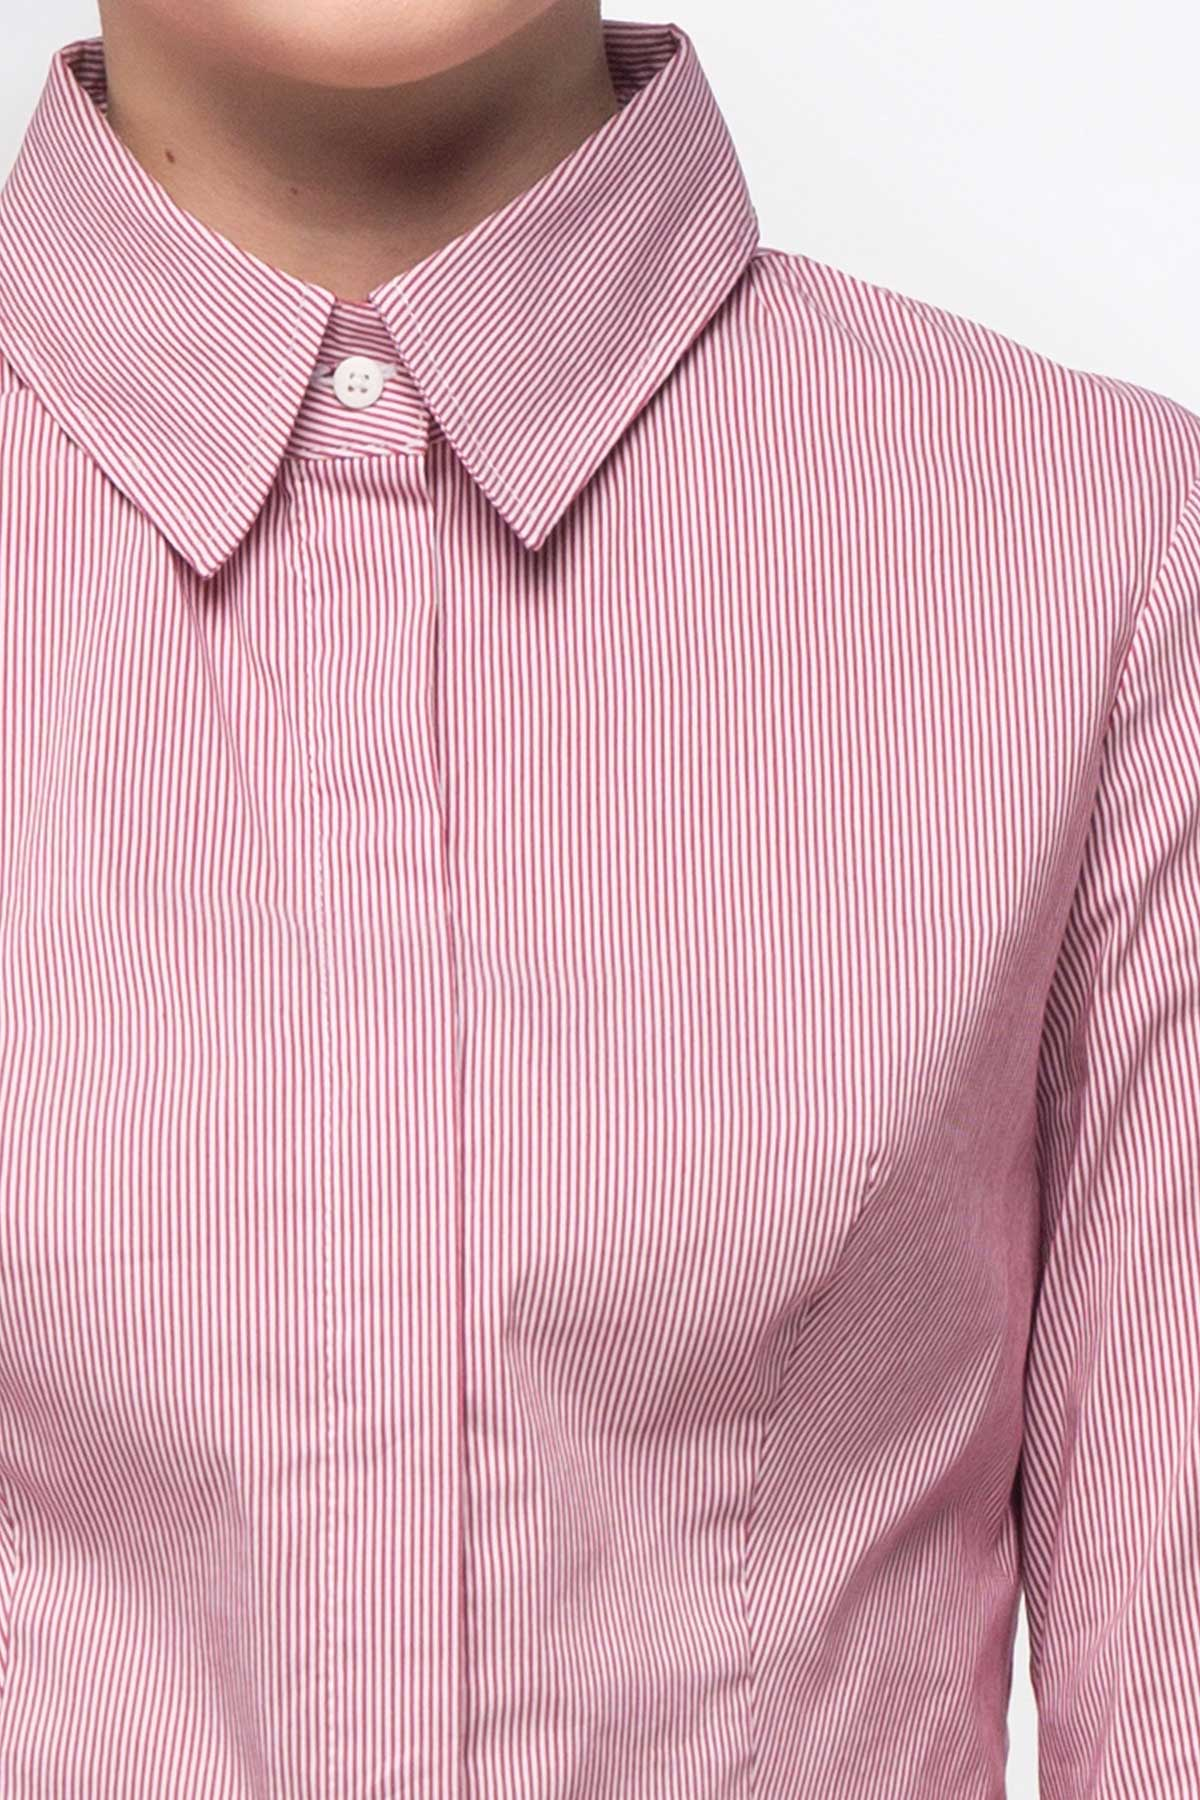 be2c0fb0 Pink striped T-shirt photo 6 - MustHave online store